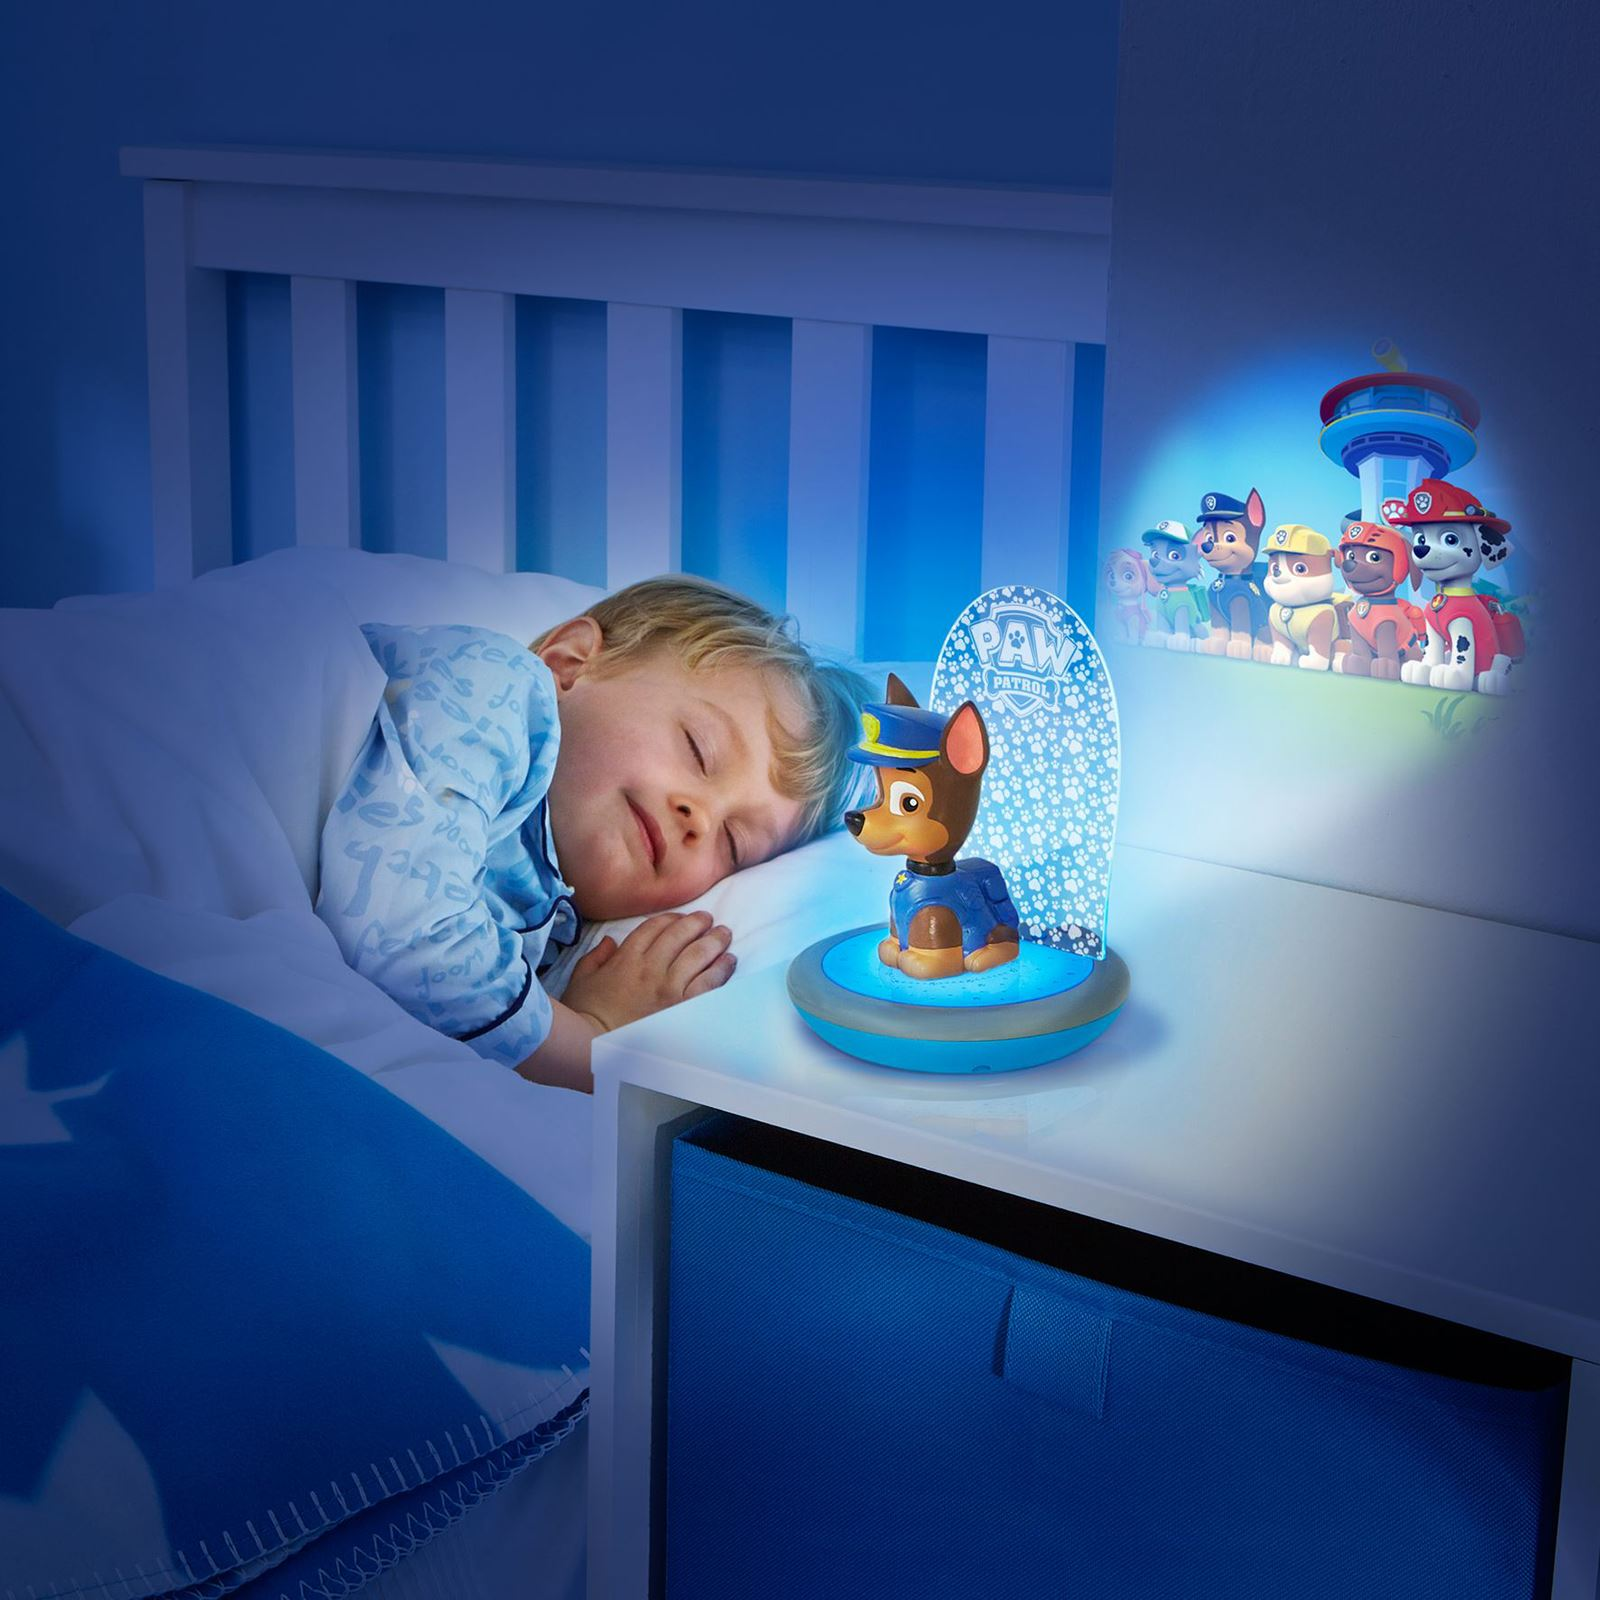 PAW PATROL CHASE 3 IN 1 MAGIC GO GLOW NIGHT LIGHT ...